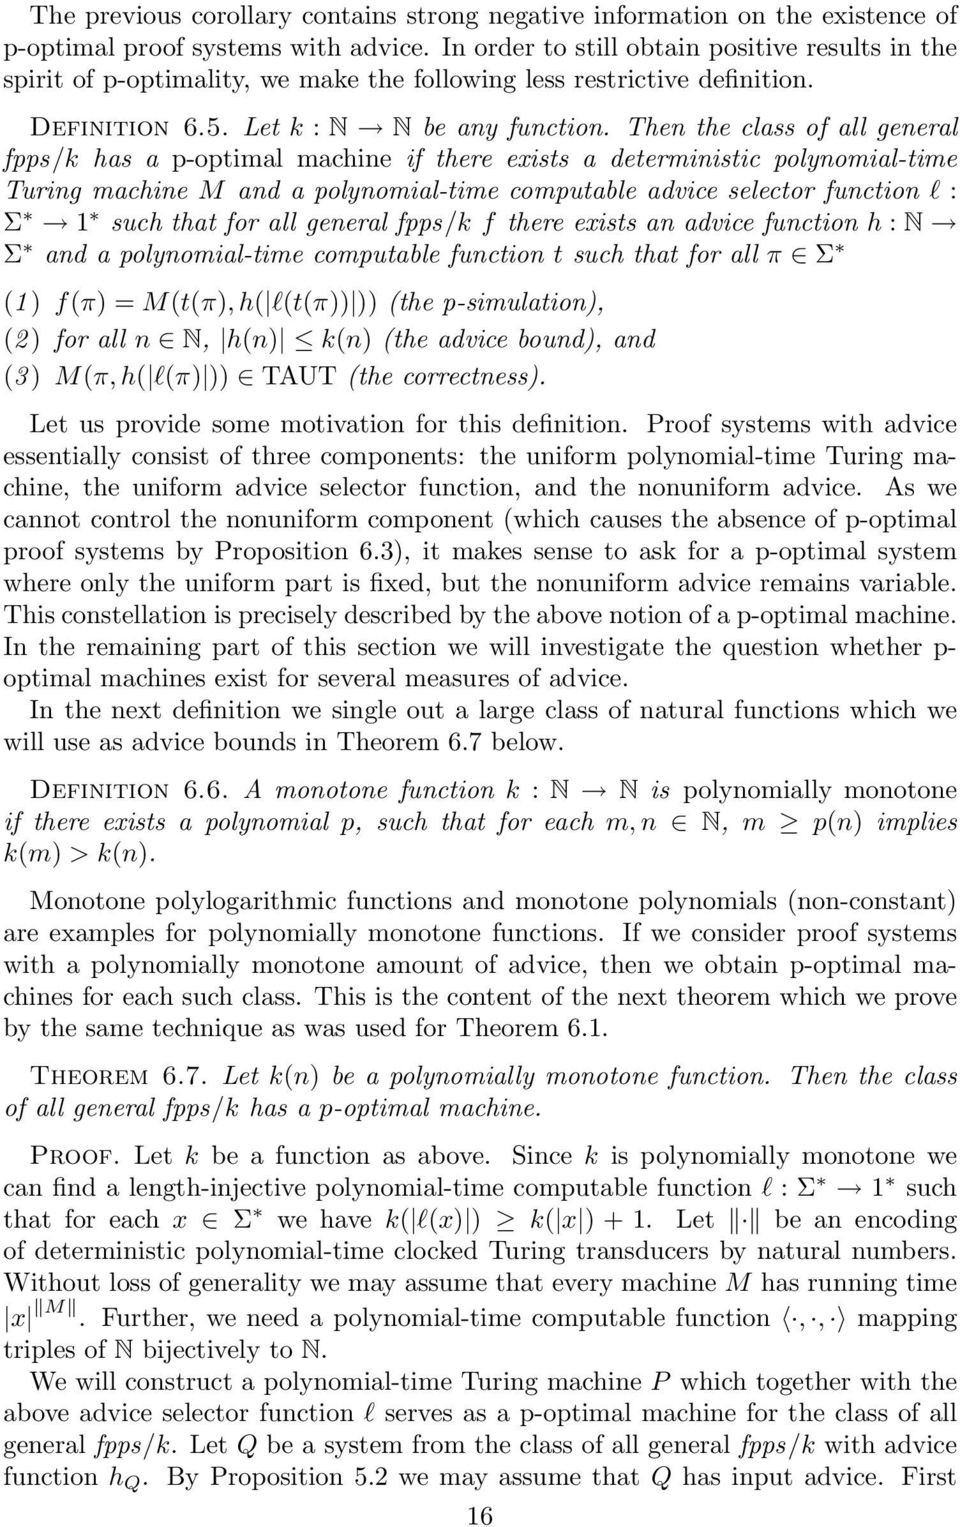 Then the class of all general fpps/k has a p-optimal machine if there exists a deterministic polynomial-time Turing machine M and a polynomial-time computable advice selector function l : Σ 1 such